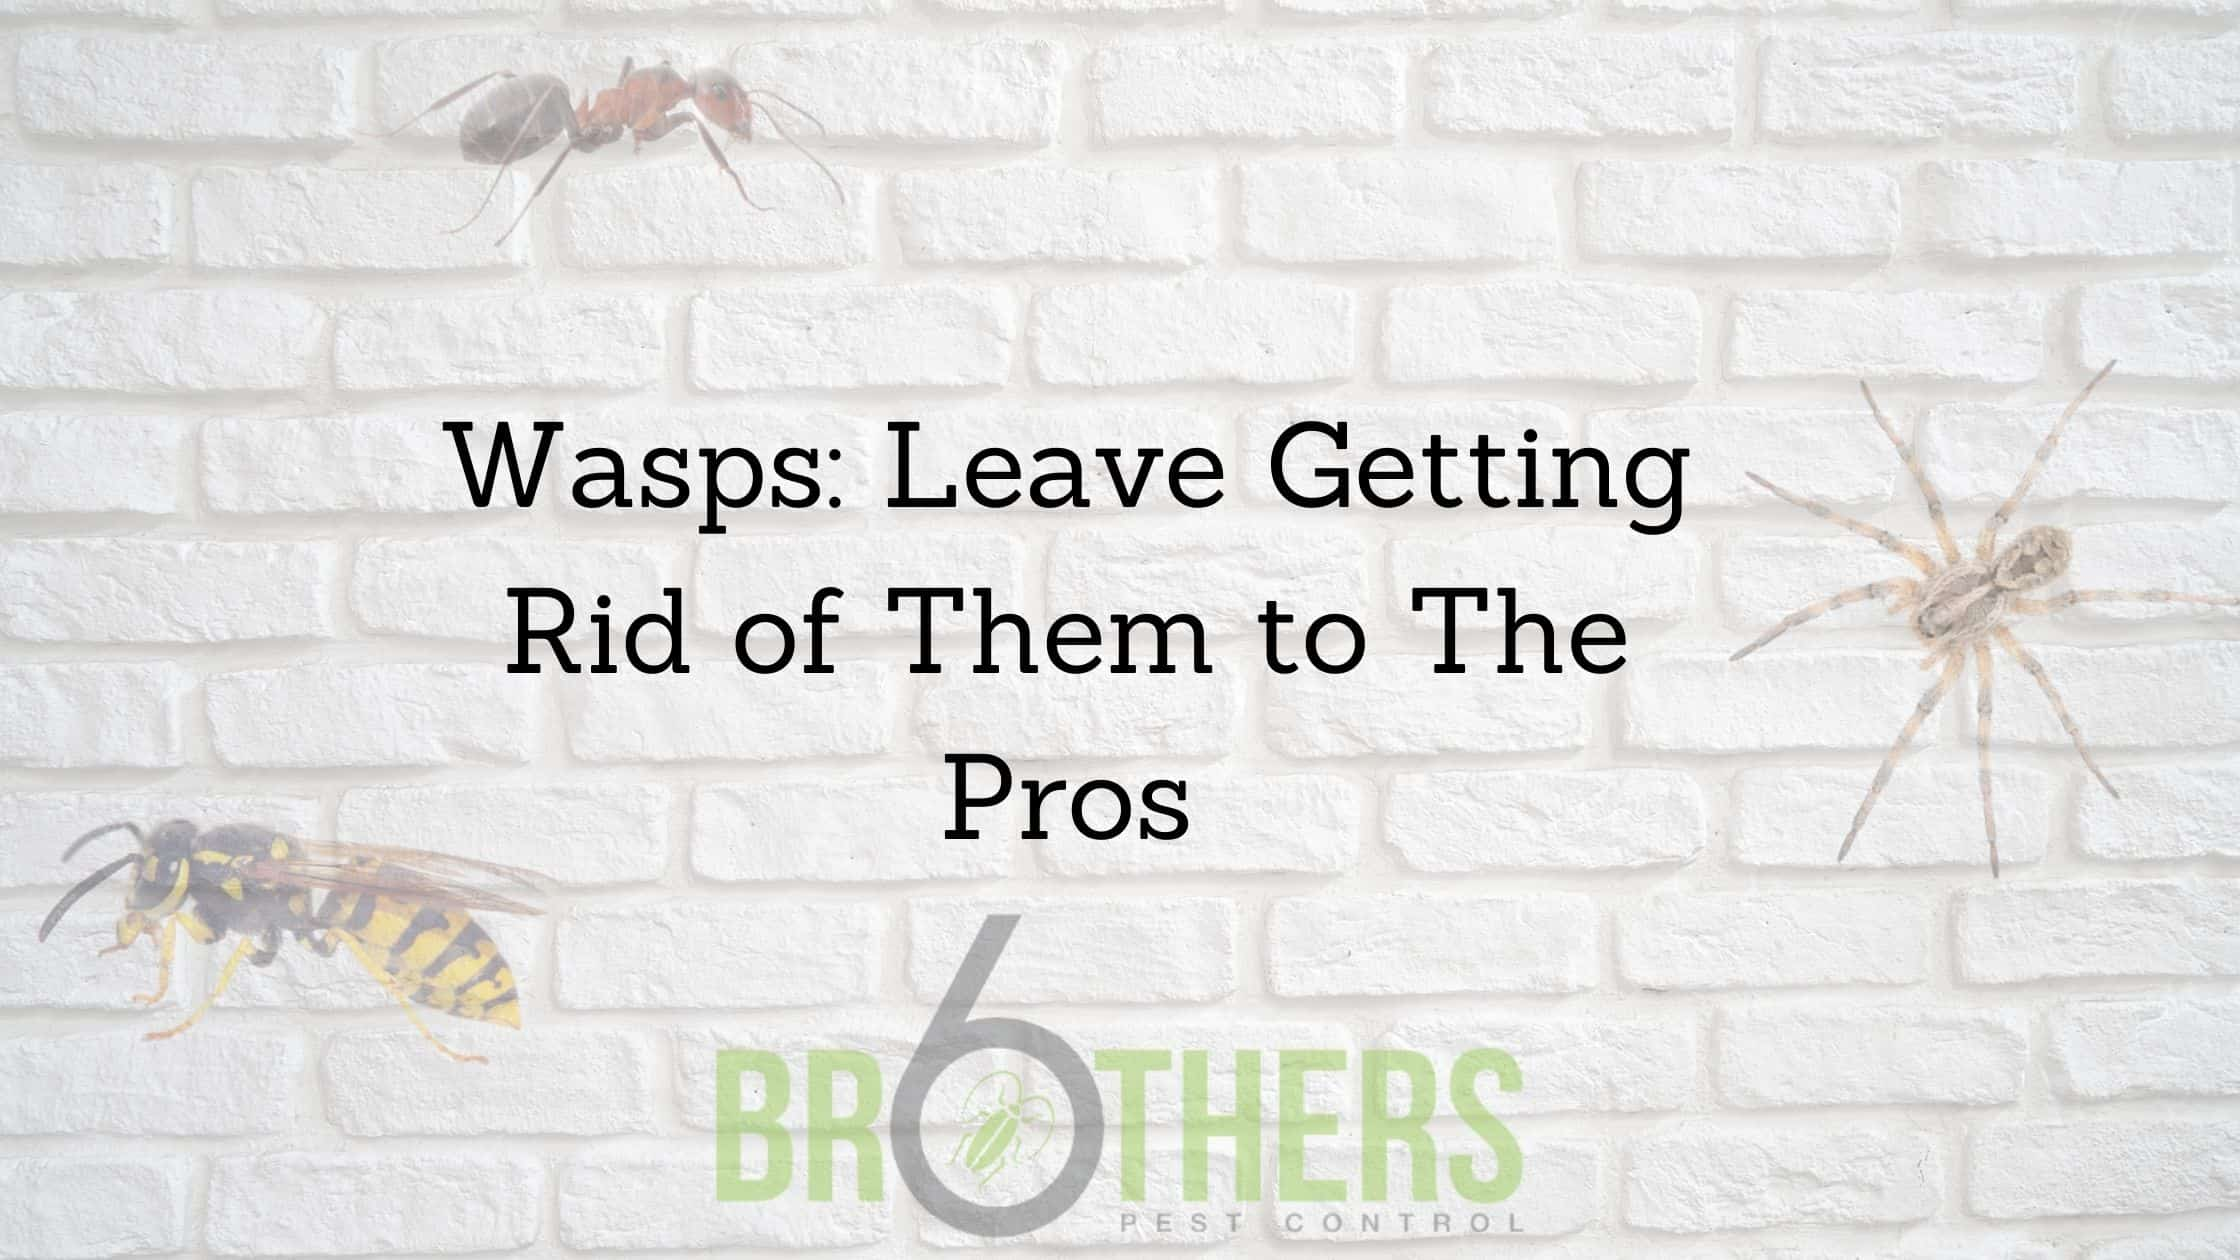 Wasps: Leave Getting Rid of Them to The Pros